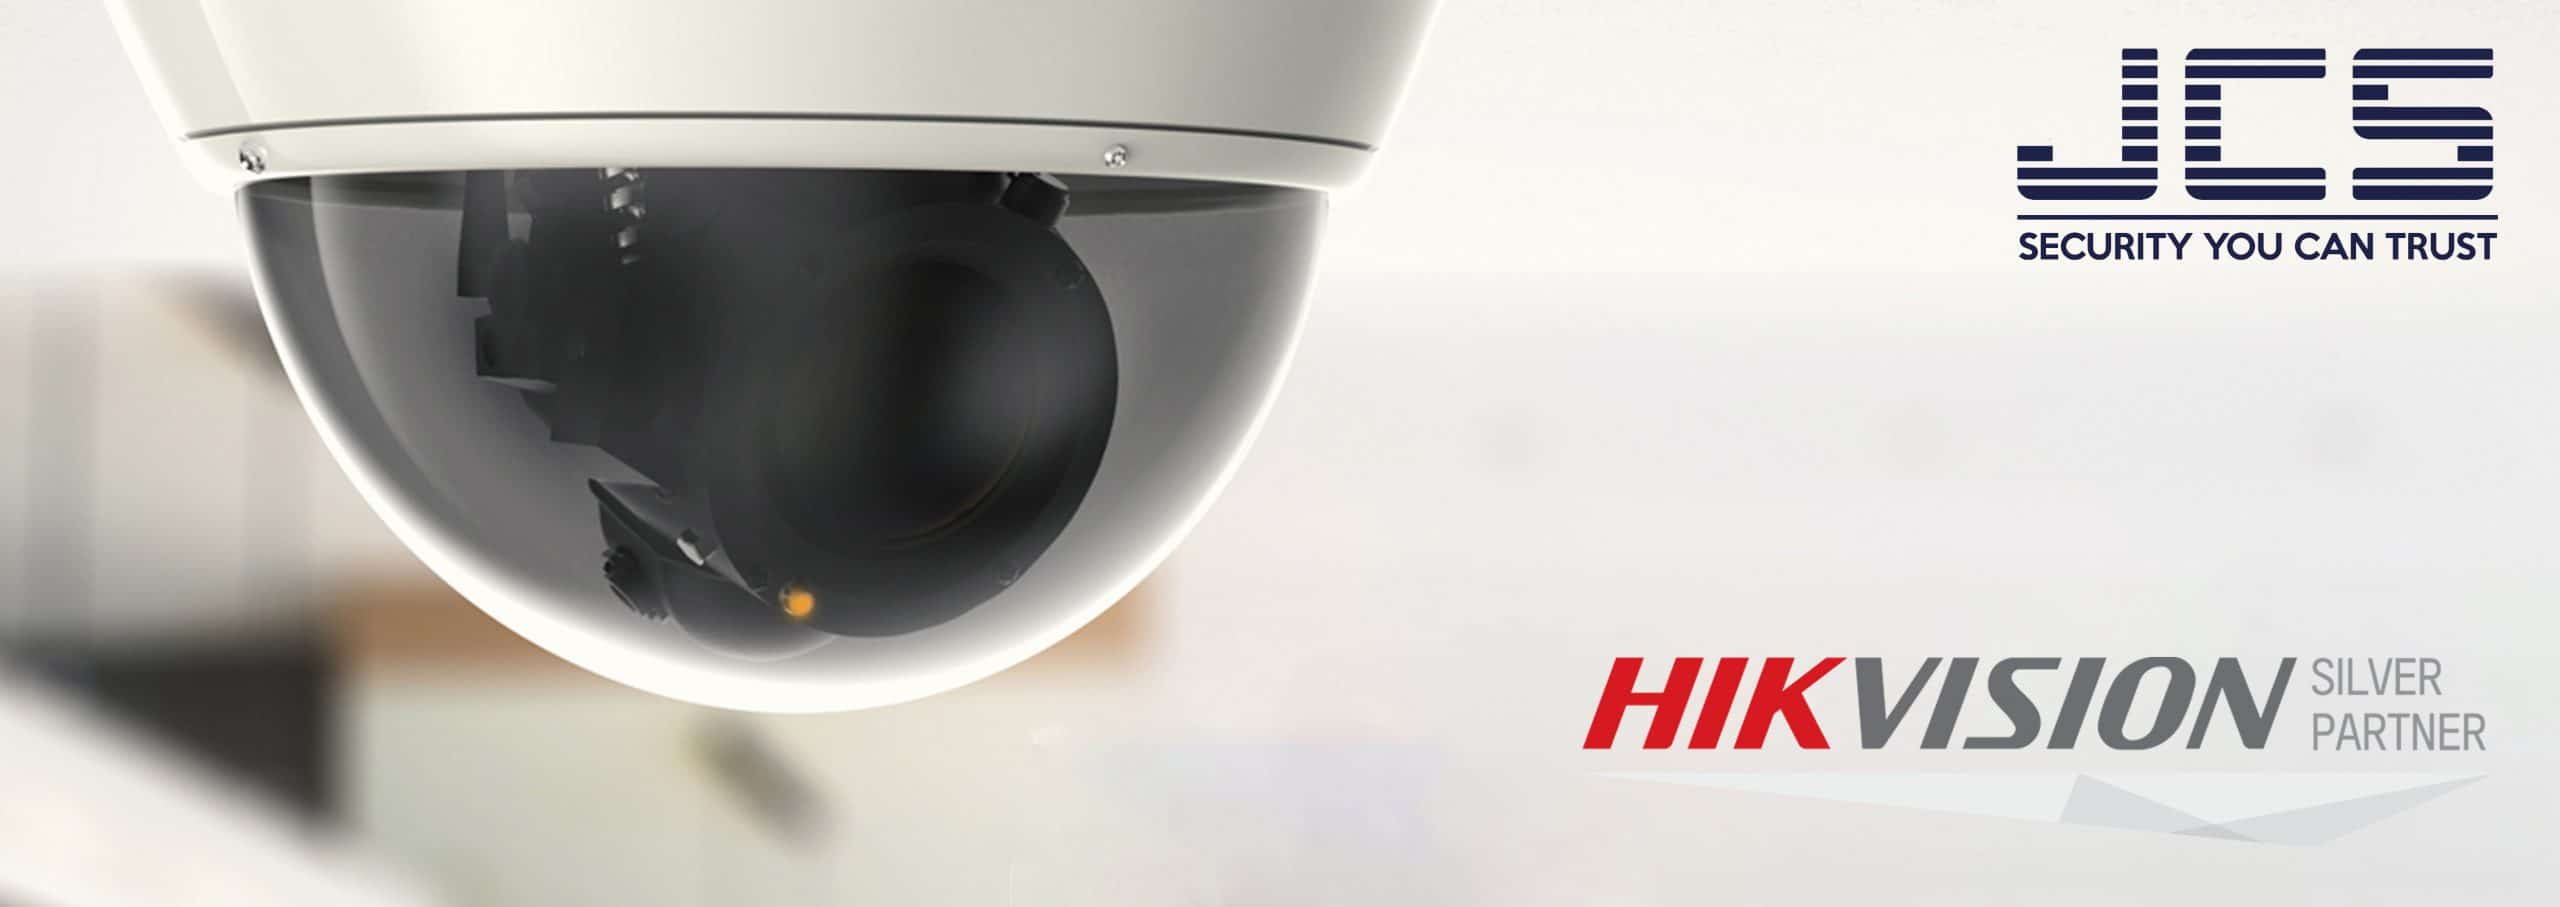 We become Silver Partners with Hikvision